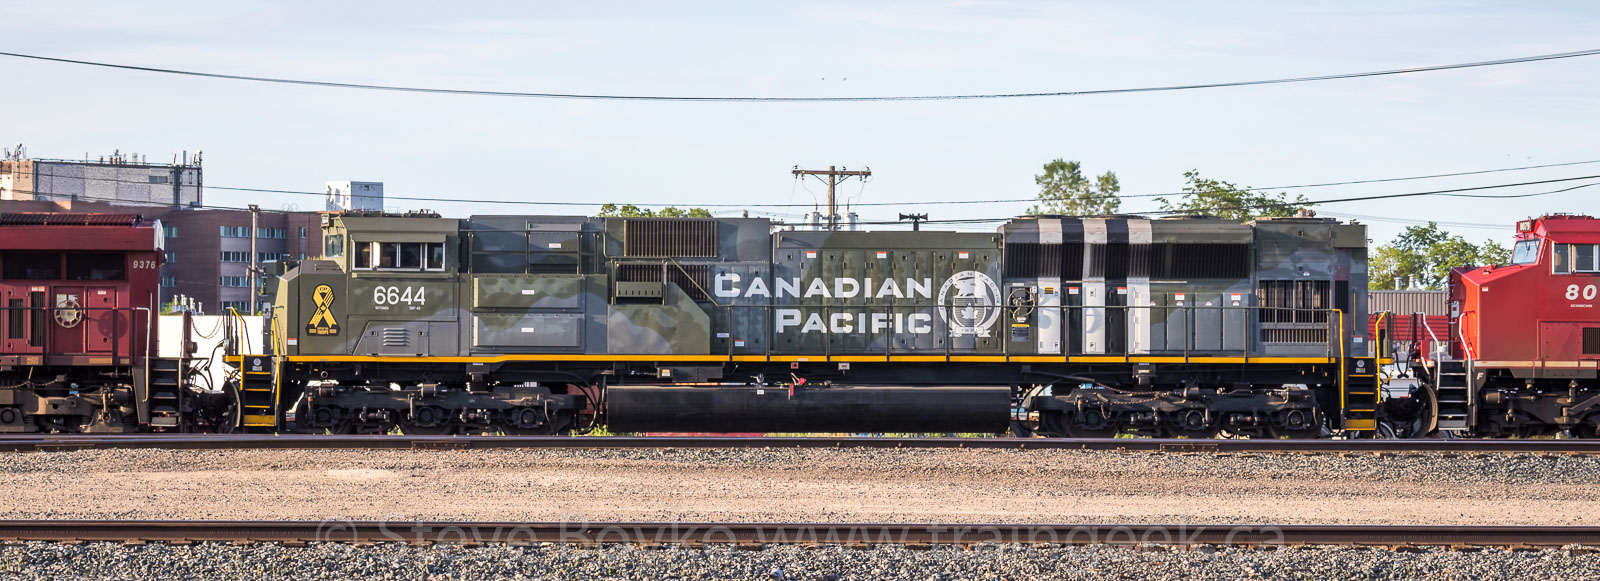 CP 6644 in Winnipeg, July 3 2020